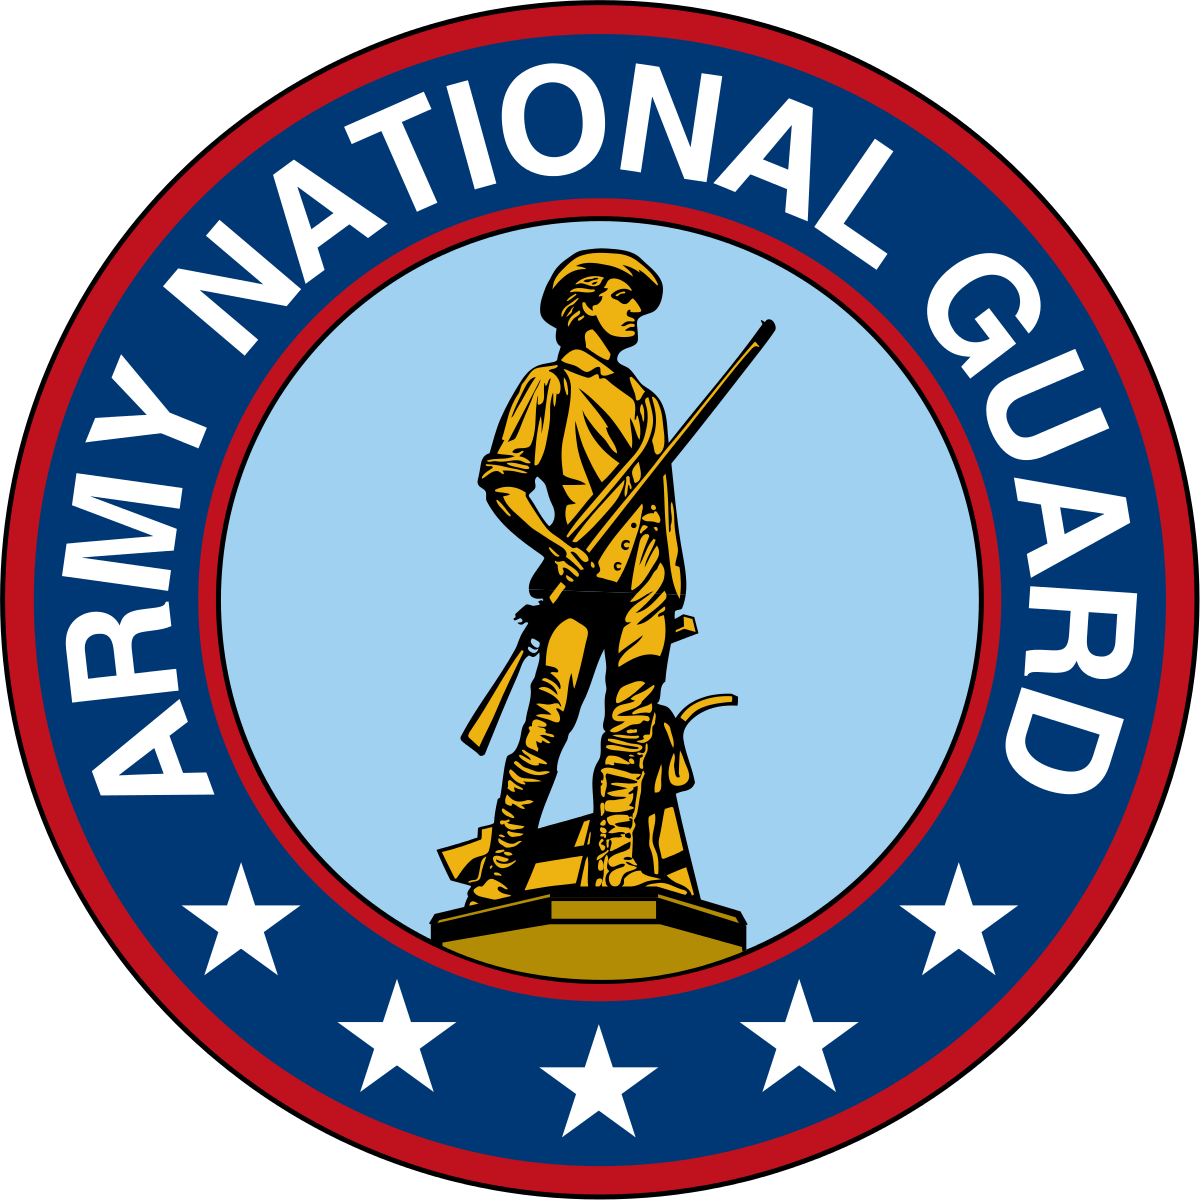 Ohio Army National Guard.